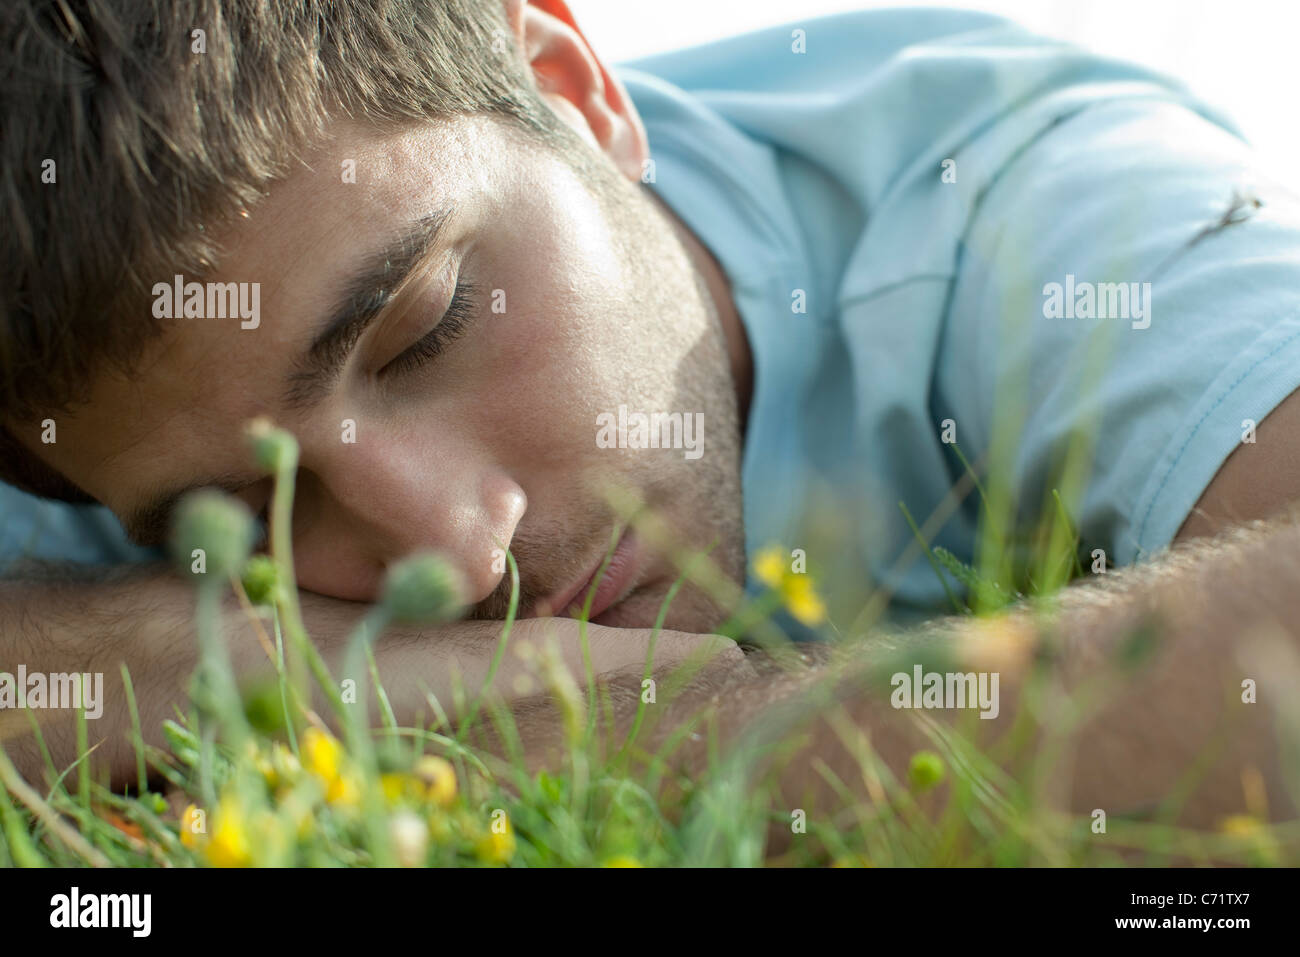 Man napping on meadow, close-up - Stock Image